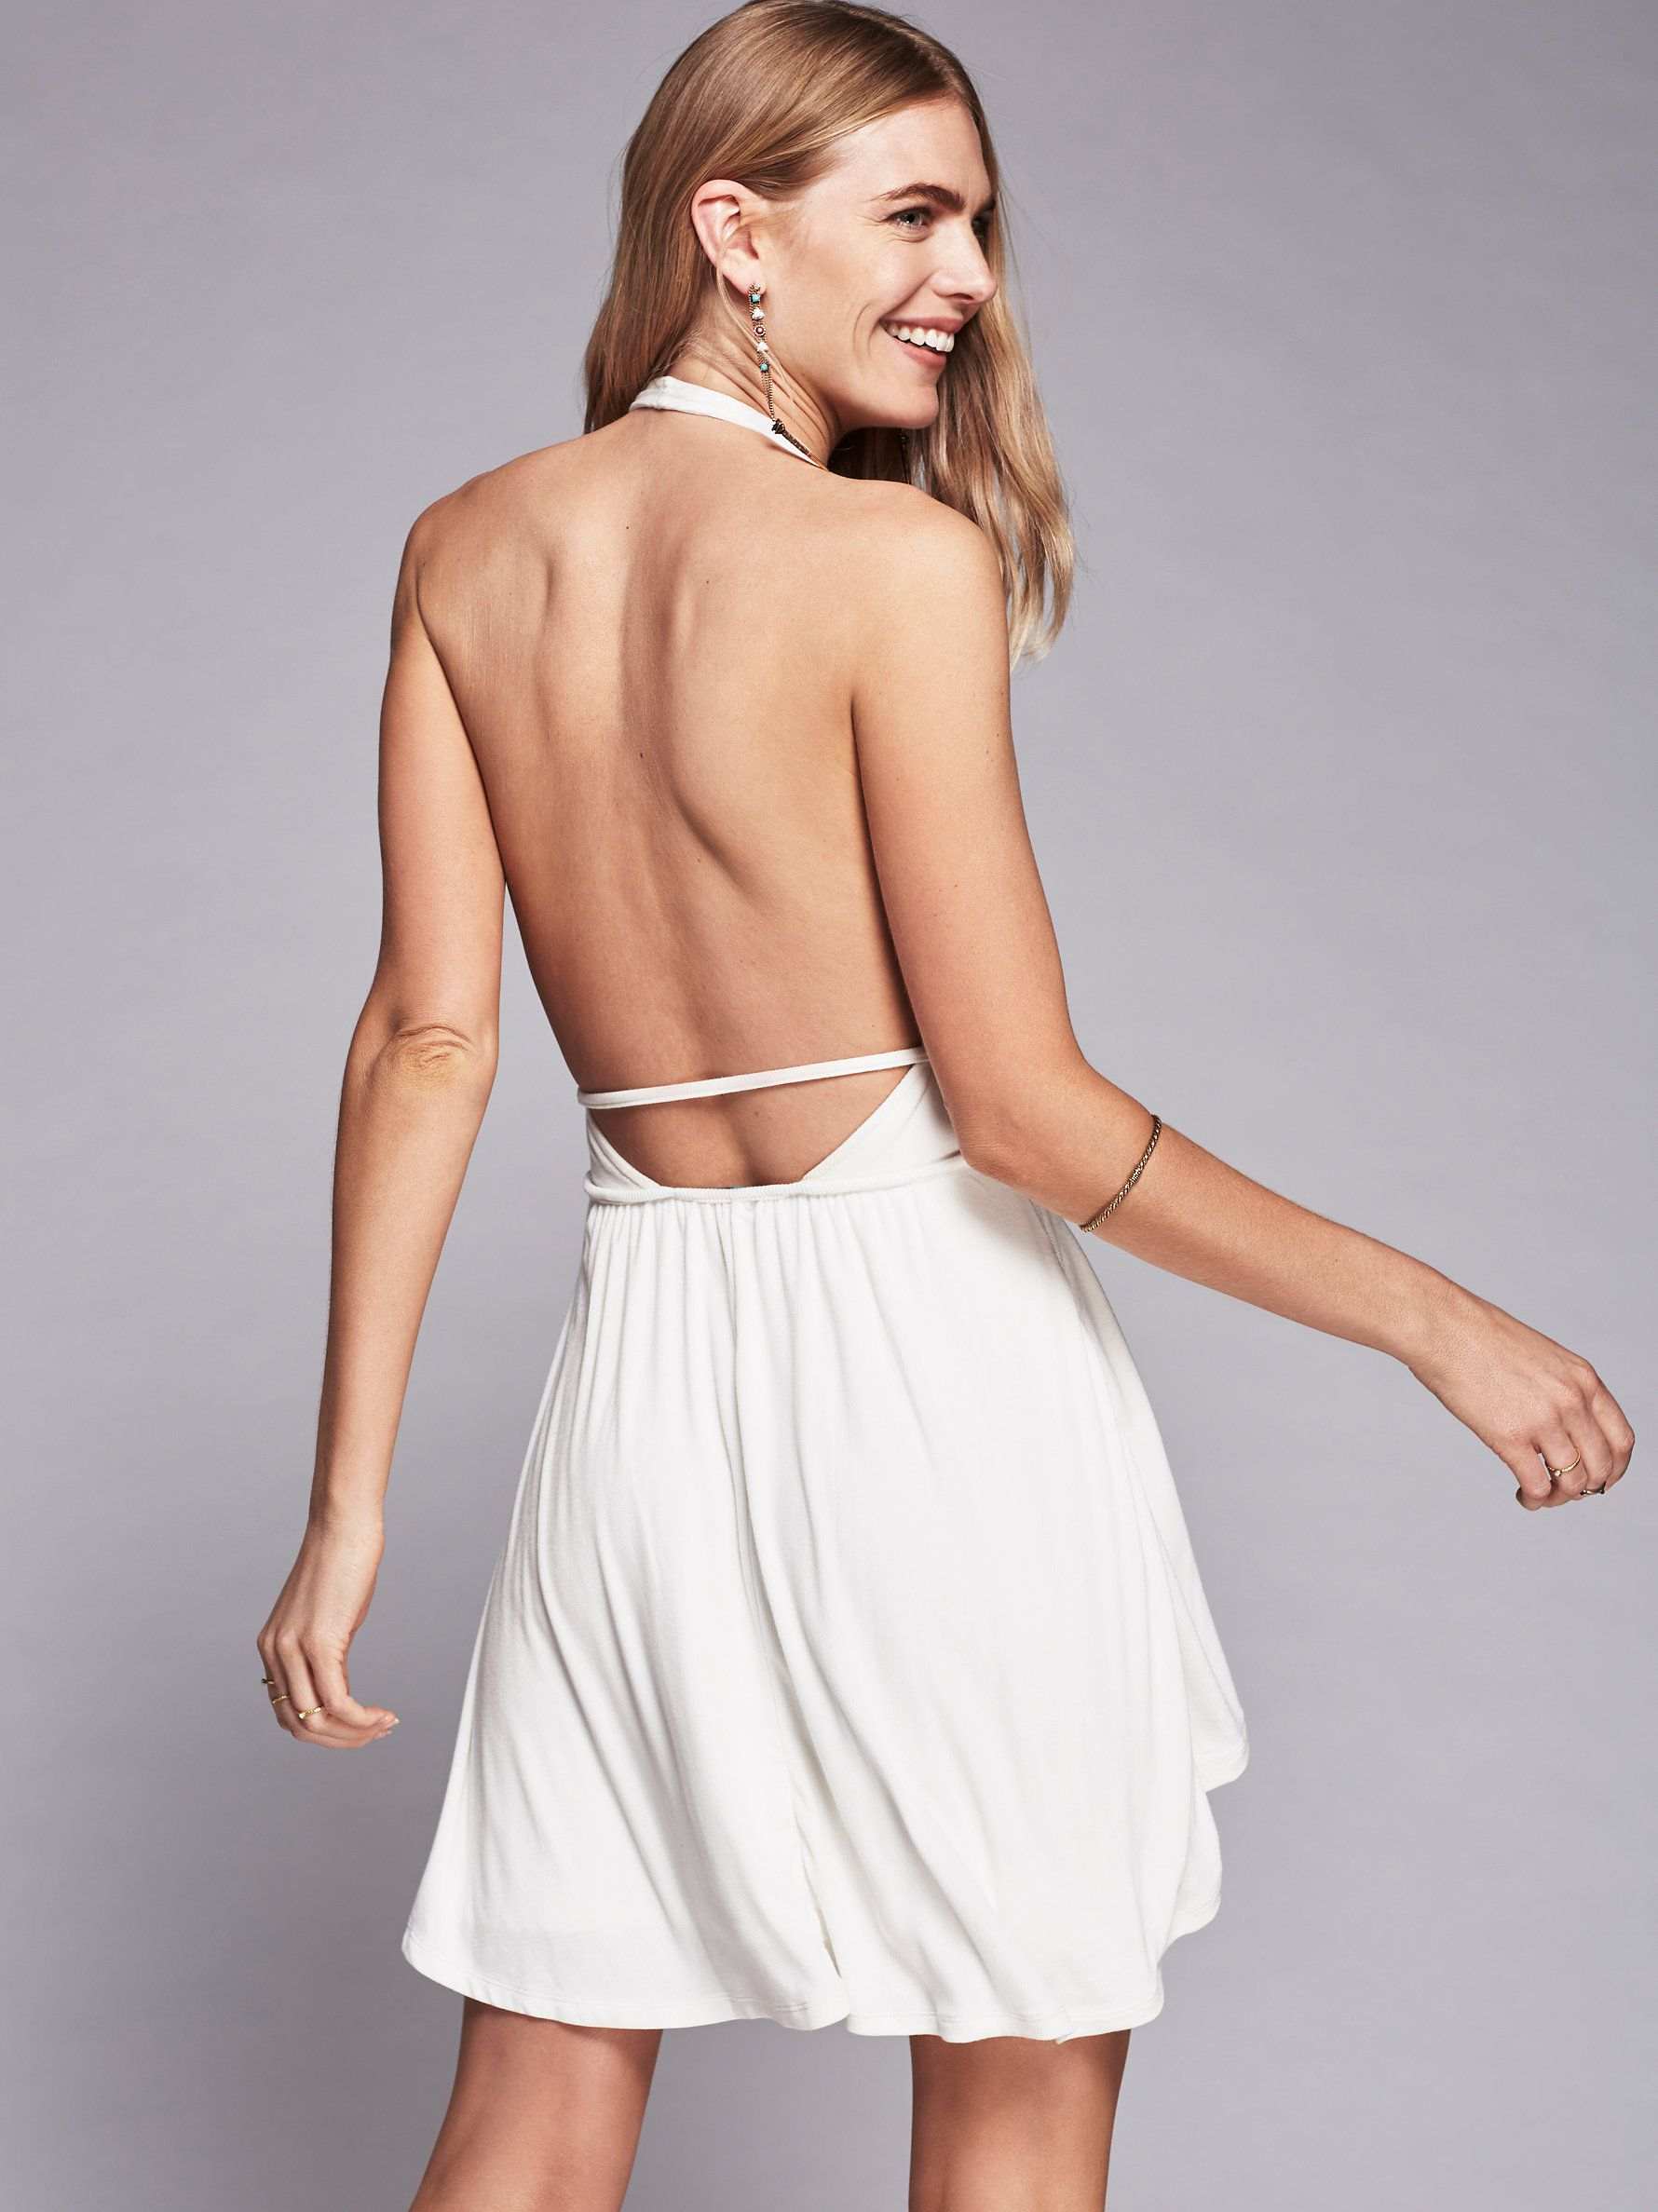 Neptune Flare Mini Dress | In our easy Beach jersey ribbed fabric this easy mini dress features a plunging V-neckline, halter neck and swingy skirt. Low back and an overlay along the skirt.